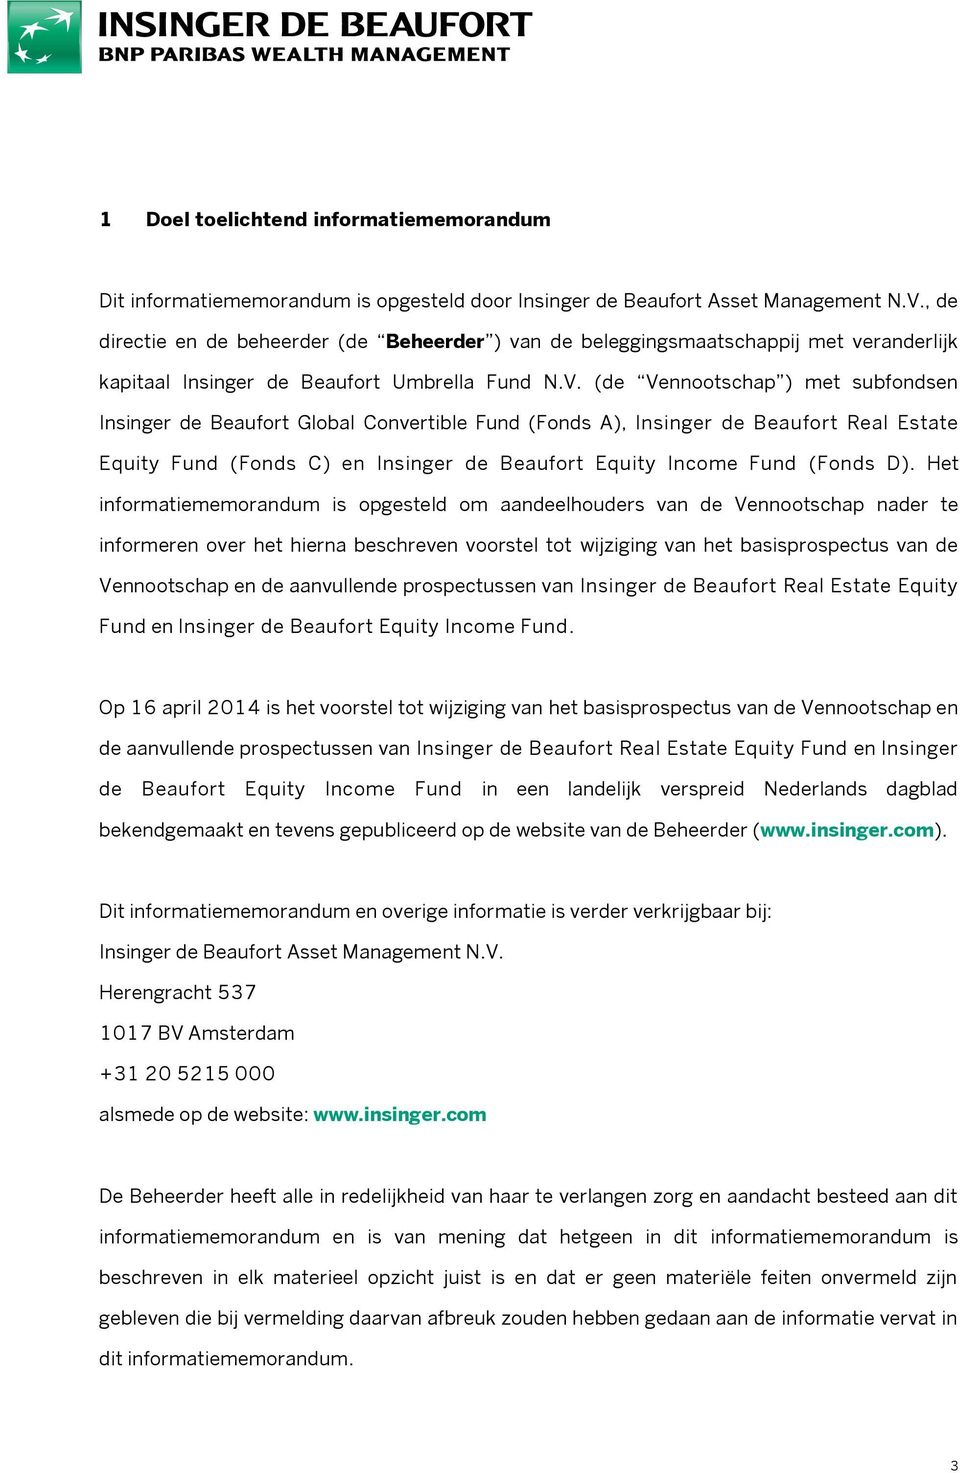 (de Vennootschap ) met subfondsen Insinger de Beaufort Global Convertible Fund (Fonds A), Insinger de Beaufort Real Estate Equity Fund (Fonds C) en Insinger de Beaufort Equity Income Fund (Fonds D).